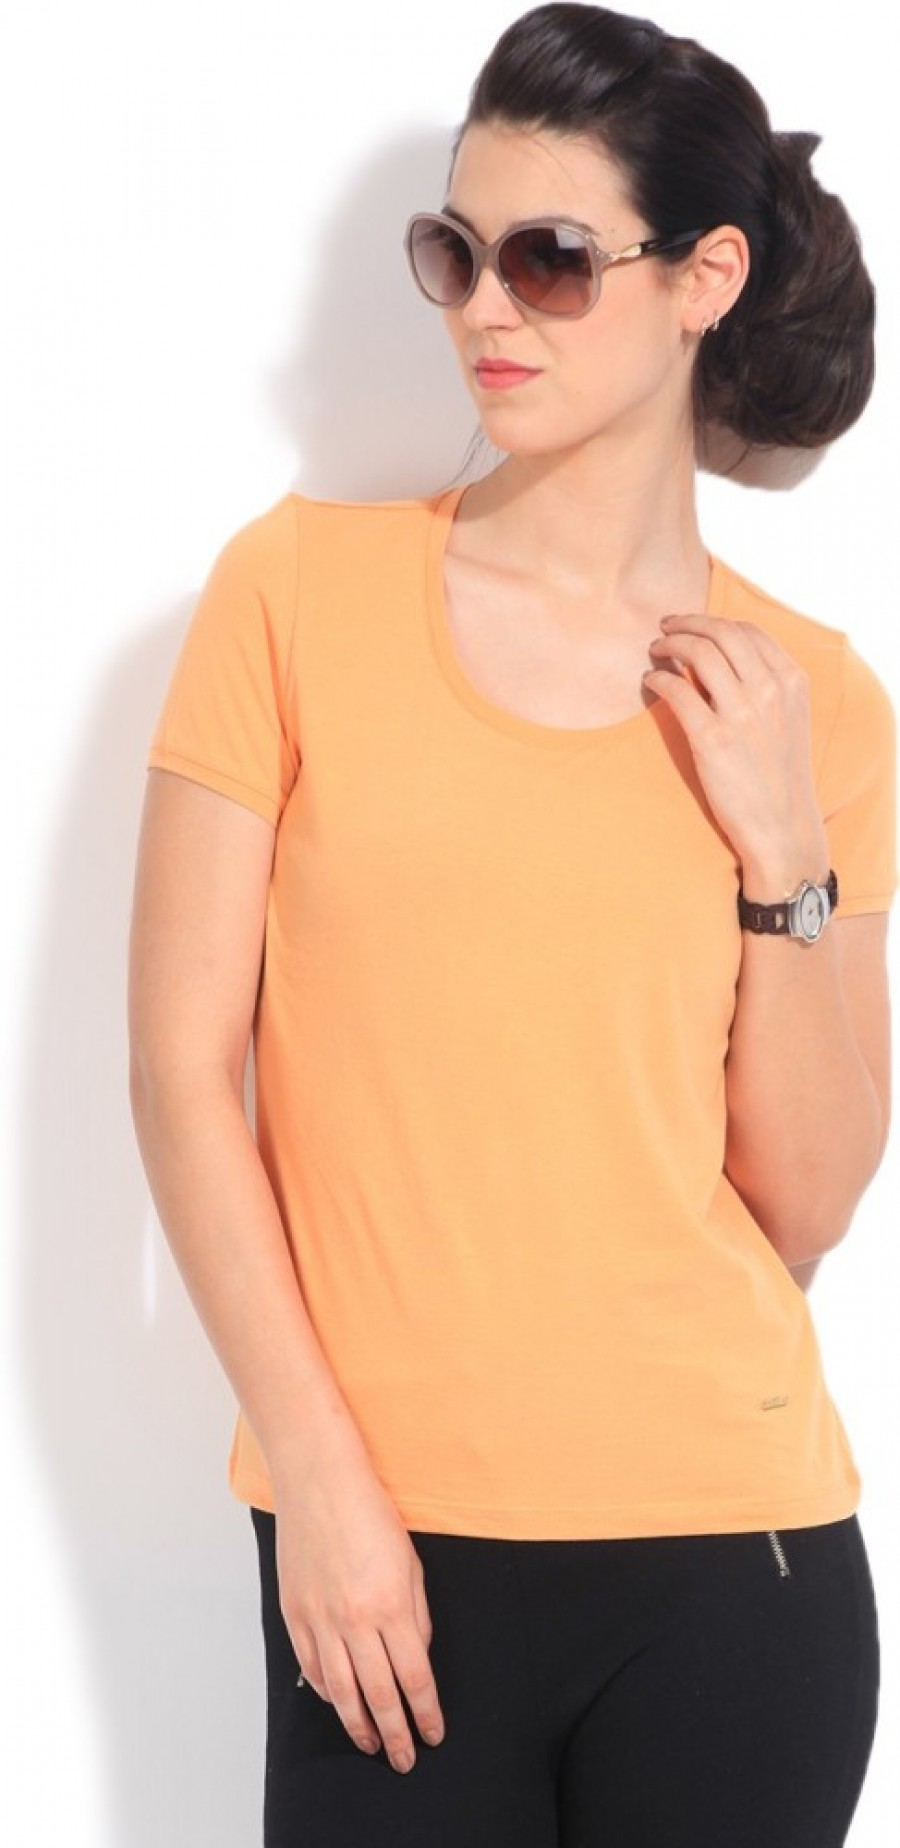 Buy United Colors of Benetton Women T Shirt Online